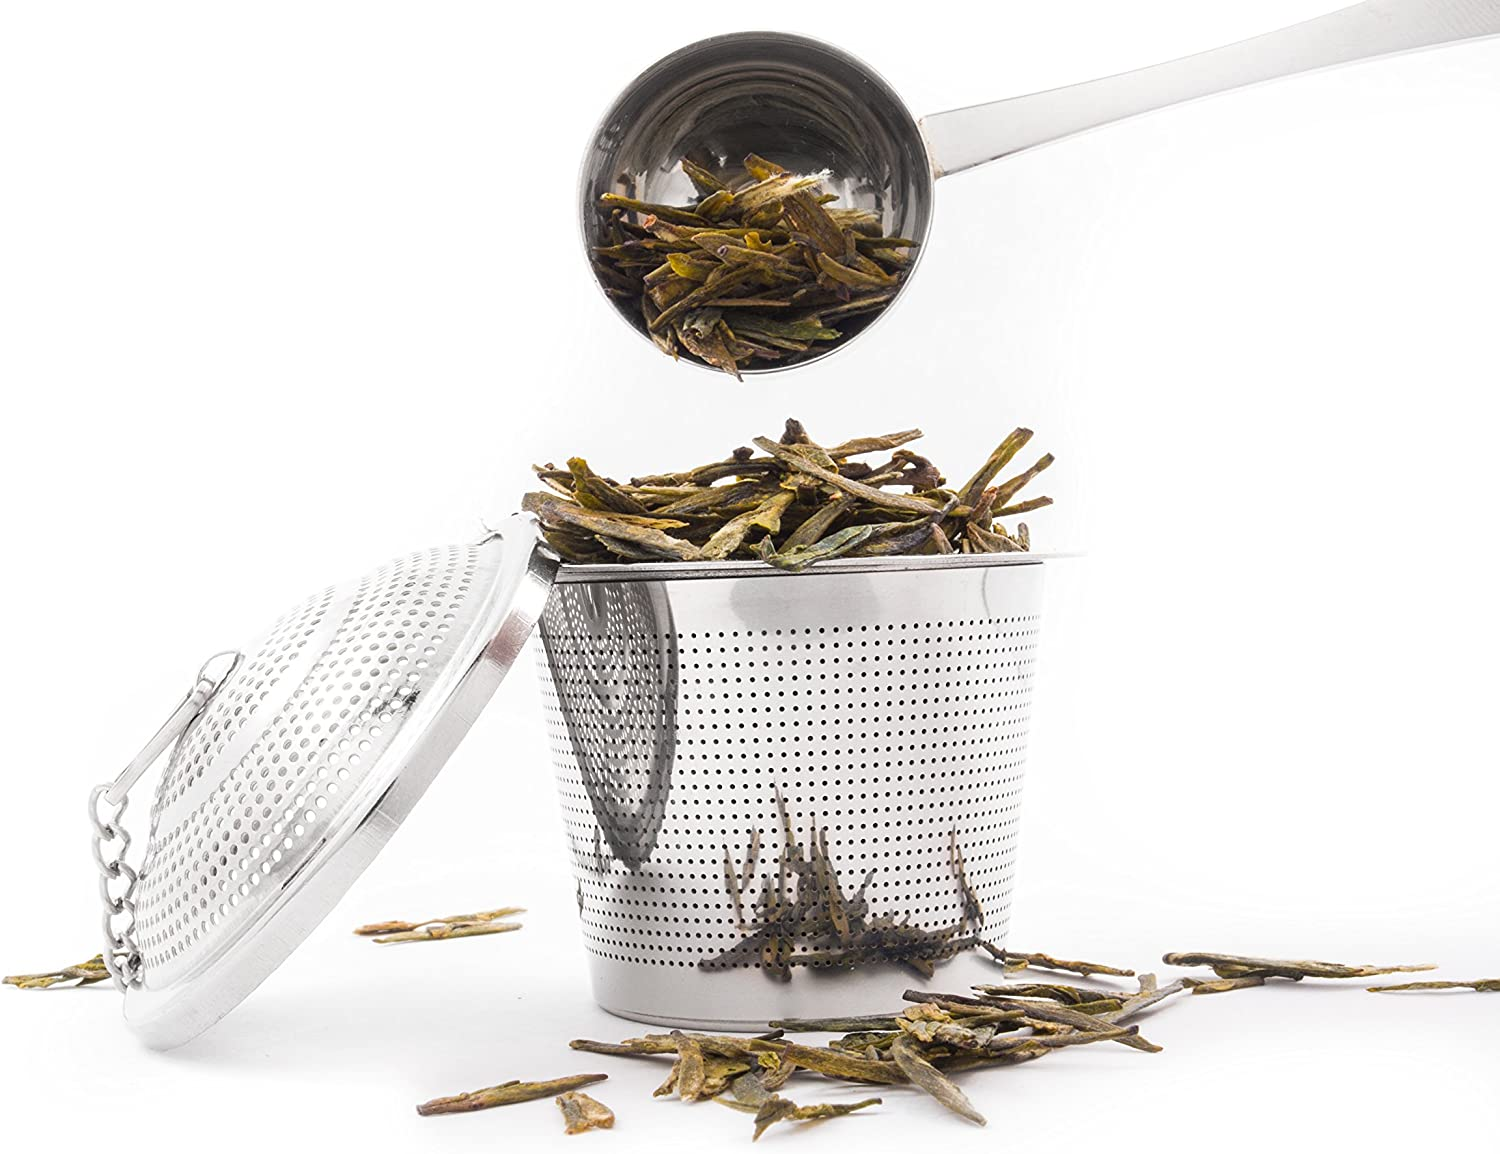 2 Pack Ultra Fine Loose Leaf Tea Ball Infuser Strainer Steeper, Including Tea Scoop, Drip Trays, Long Chain Handle for Easy Brewing All Fine Teas, Spices and Seasonings